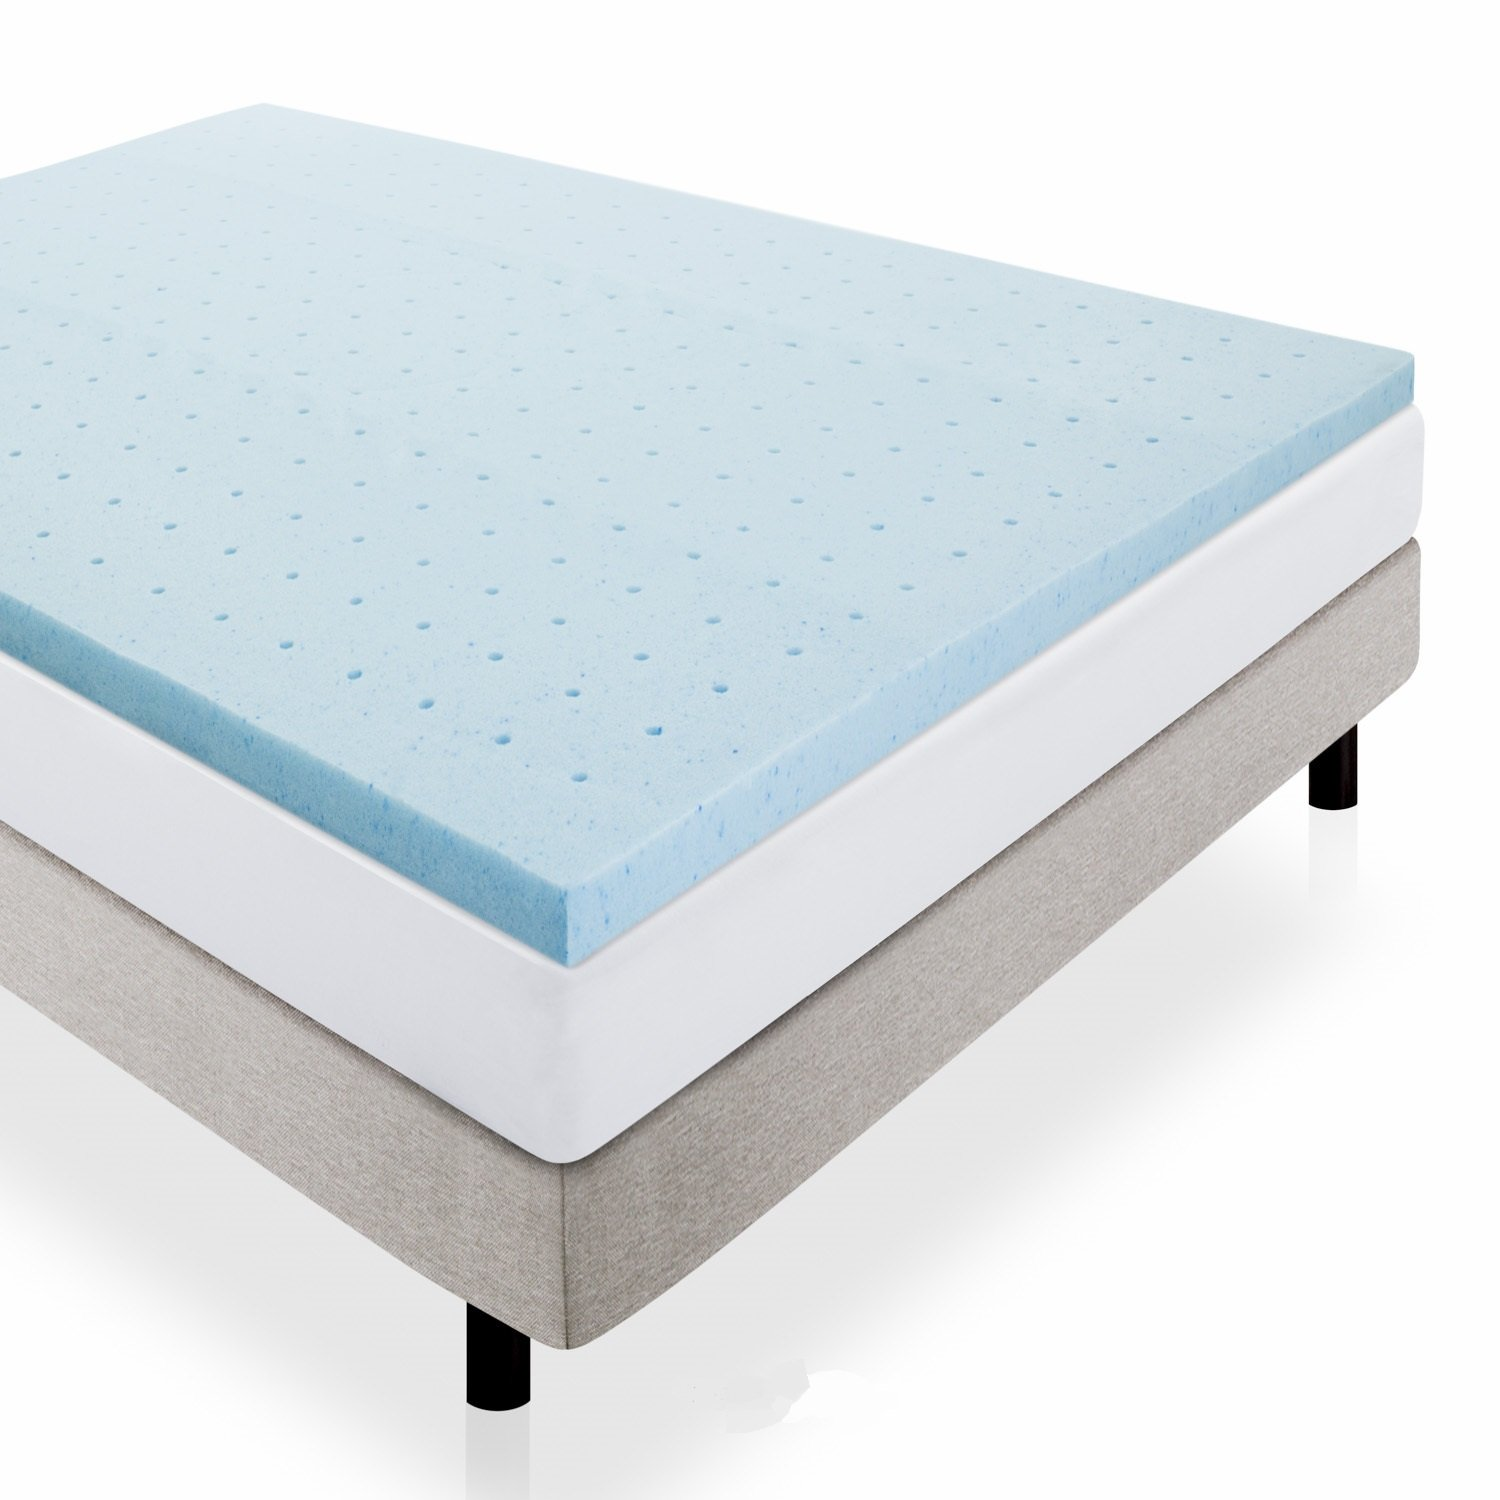 Mattress Topper, 2'' Thick Gel-Infused Memory Foam, Captures and Distributes Heat Allows Air Flow, Extremely Soft Supportive Consistency, Multiple Sizes + Expert Guide